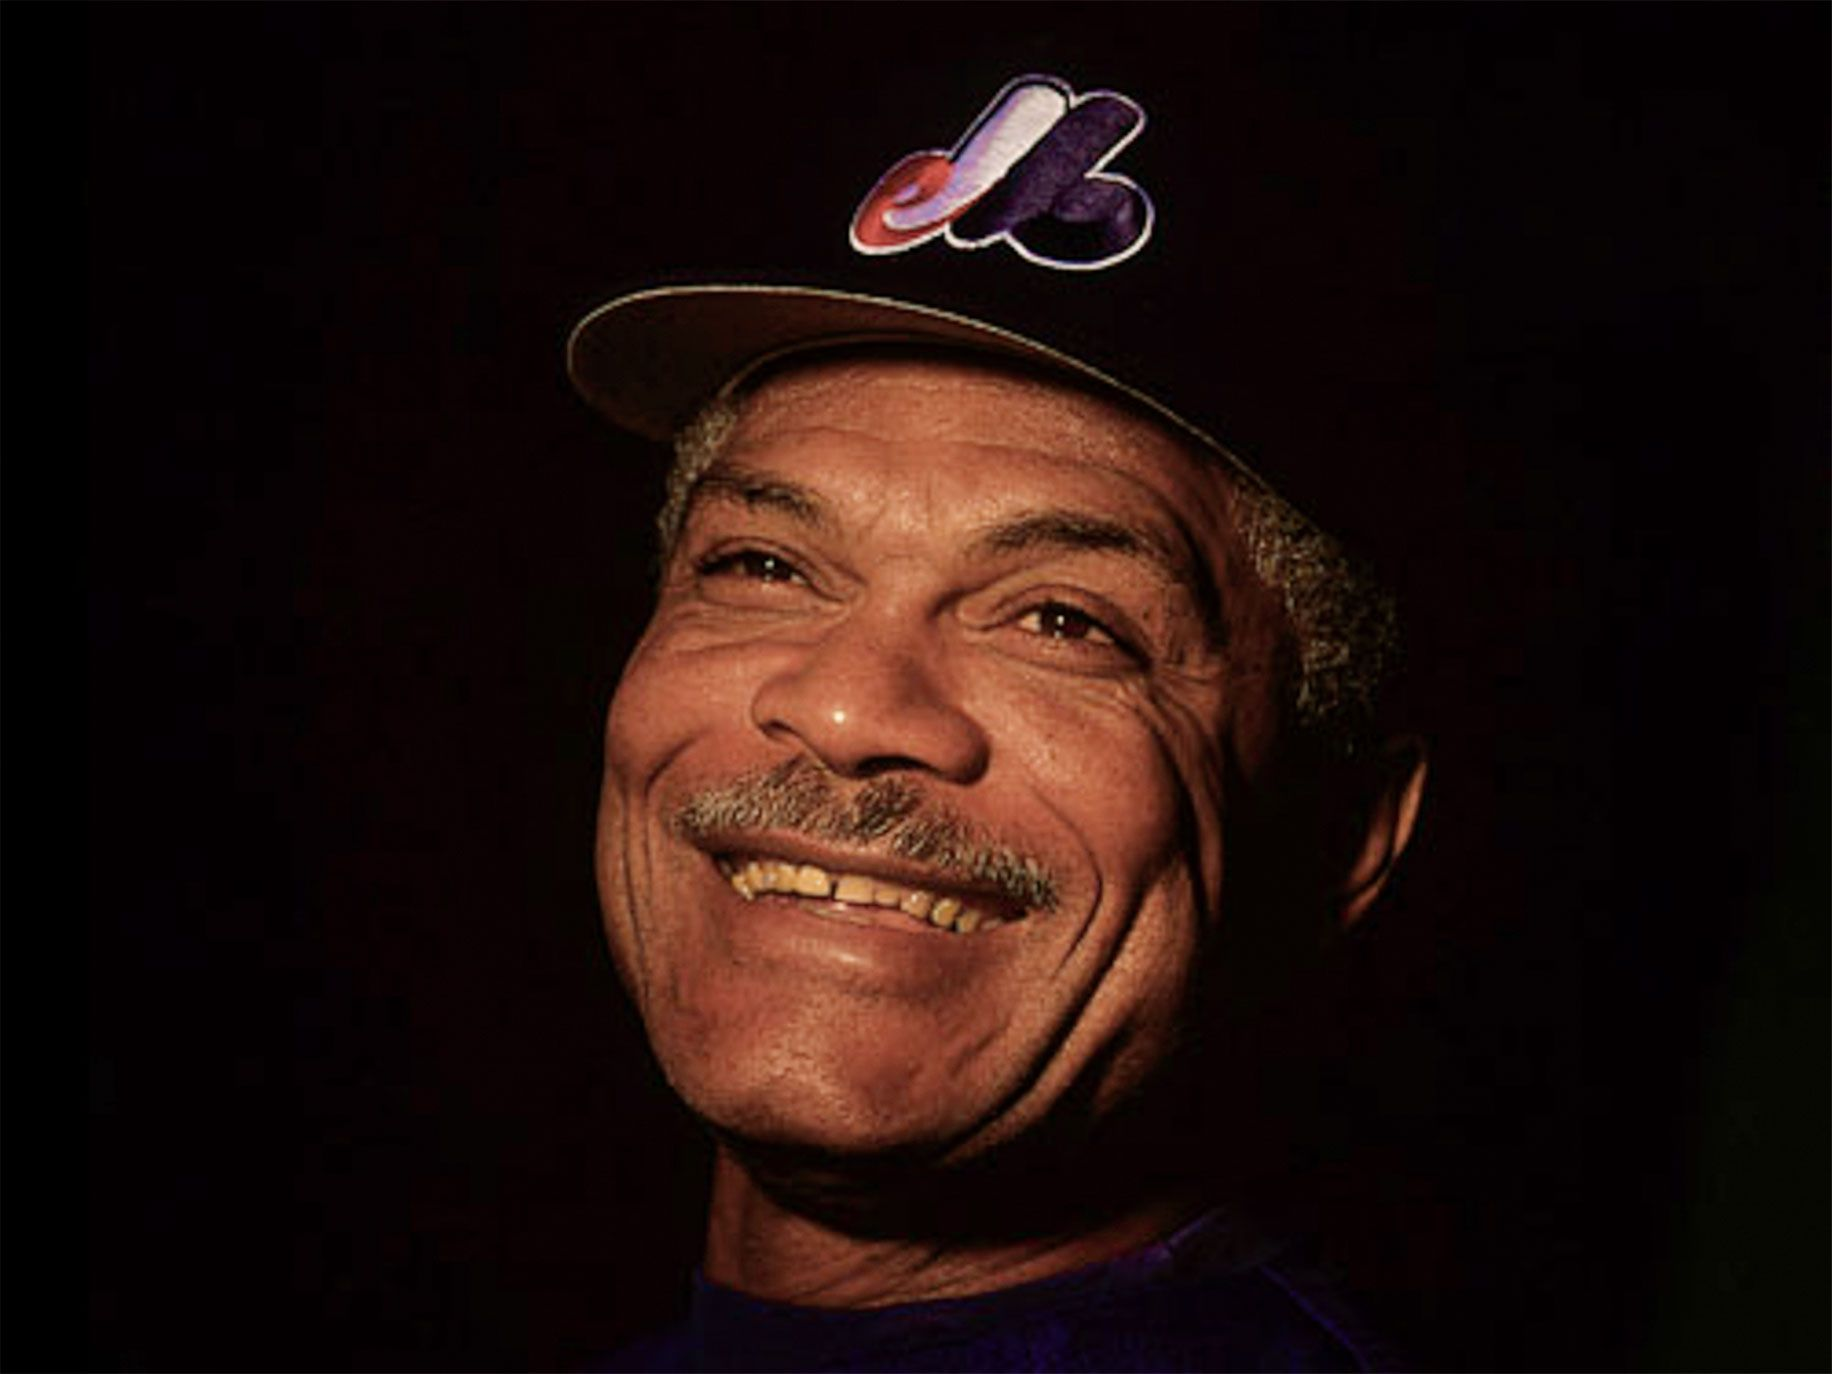 Former San Francisco Giants player Felipe Alou. As part of a vanguard of Latino players for the team in the 1960s, they had the opportunity to create a baseball dynasty — but the team was torn apart by racial prejudice and mismanagement. Alou later managed the Giants.